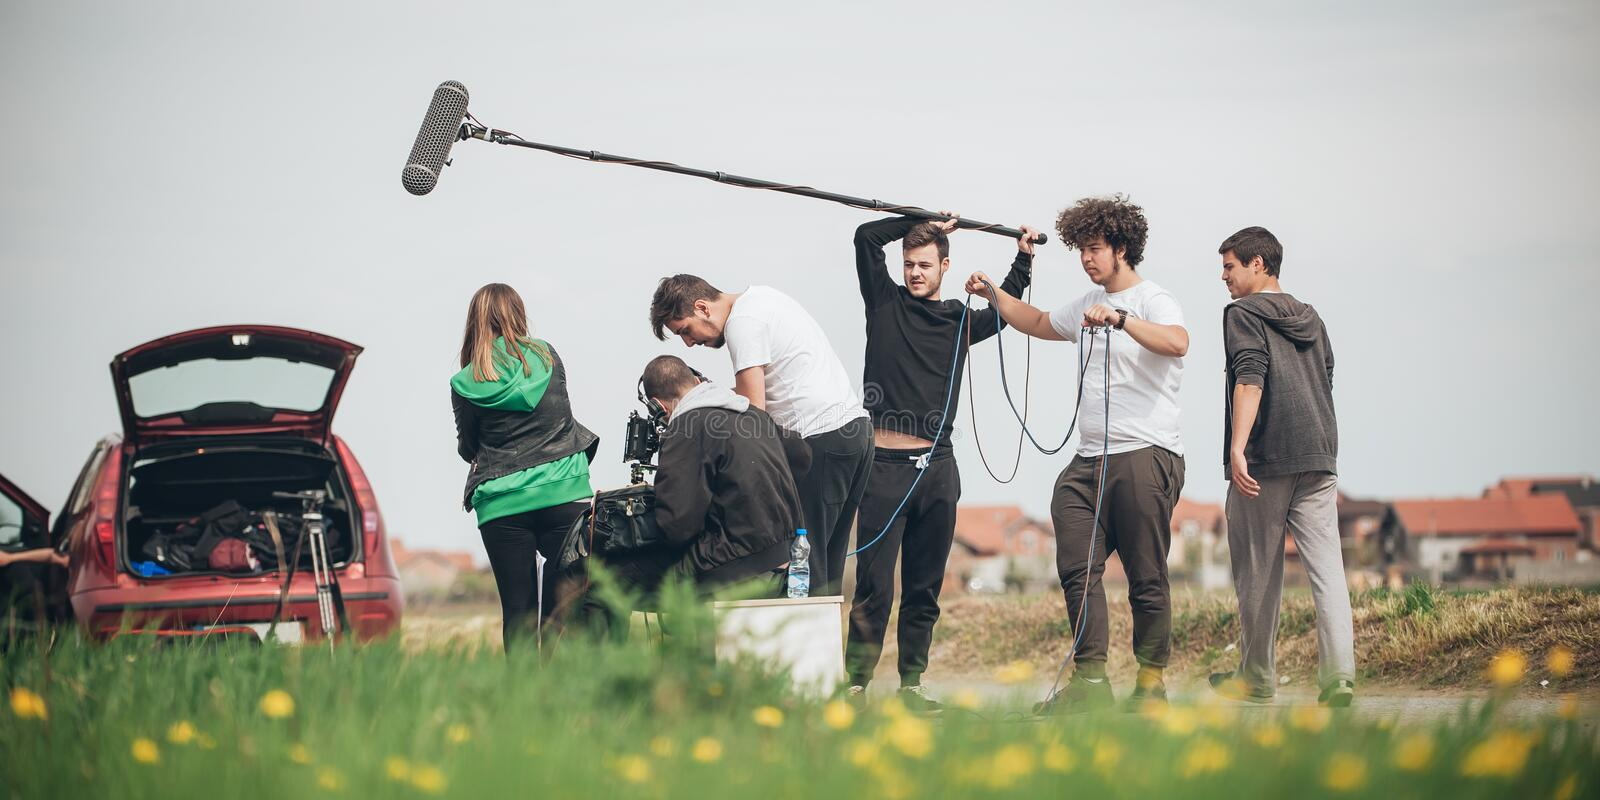 Behind the scene. Film crew filming movie scene outdoor. Behind the scene. Film crew team filming movie scene on outdoor location. Group cinema set stock images